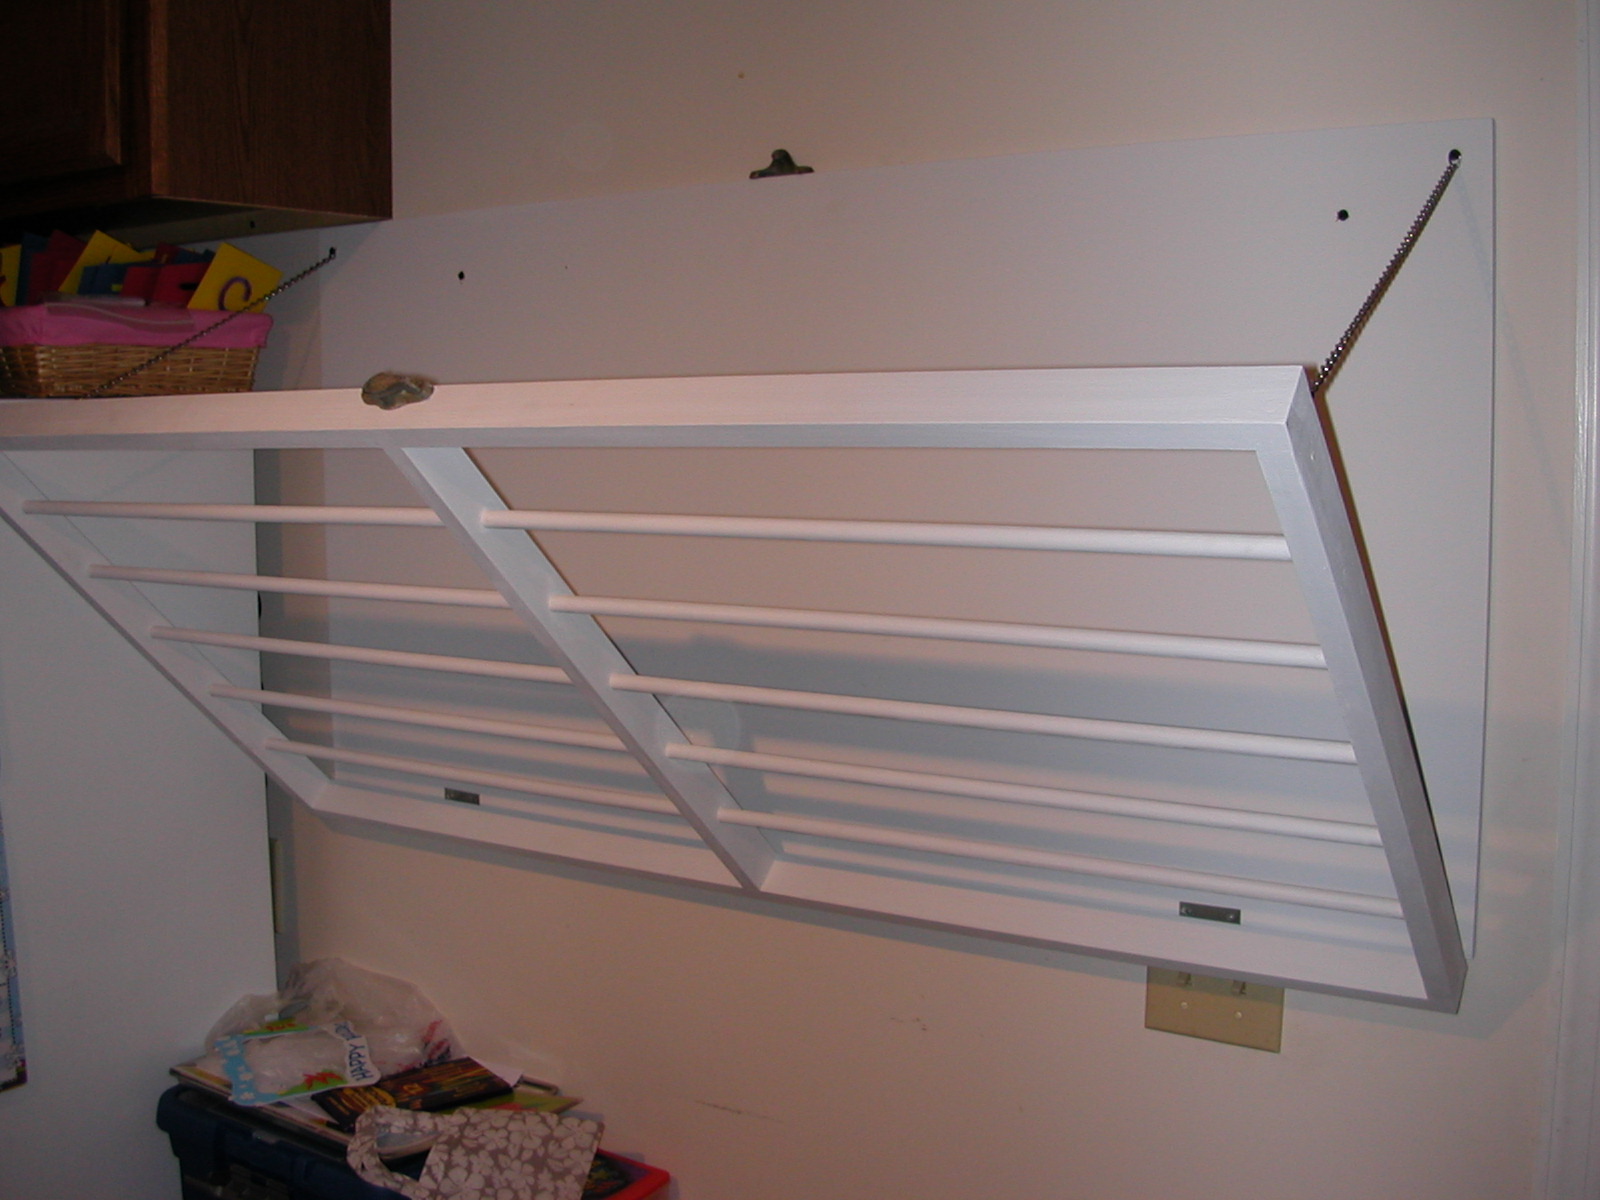 Popular wall mounted clothes drying rack ... wall mounted laundry rack. we ... elijofx